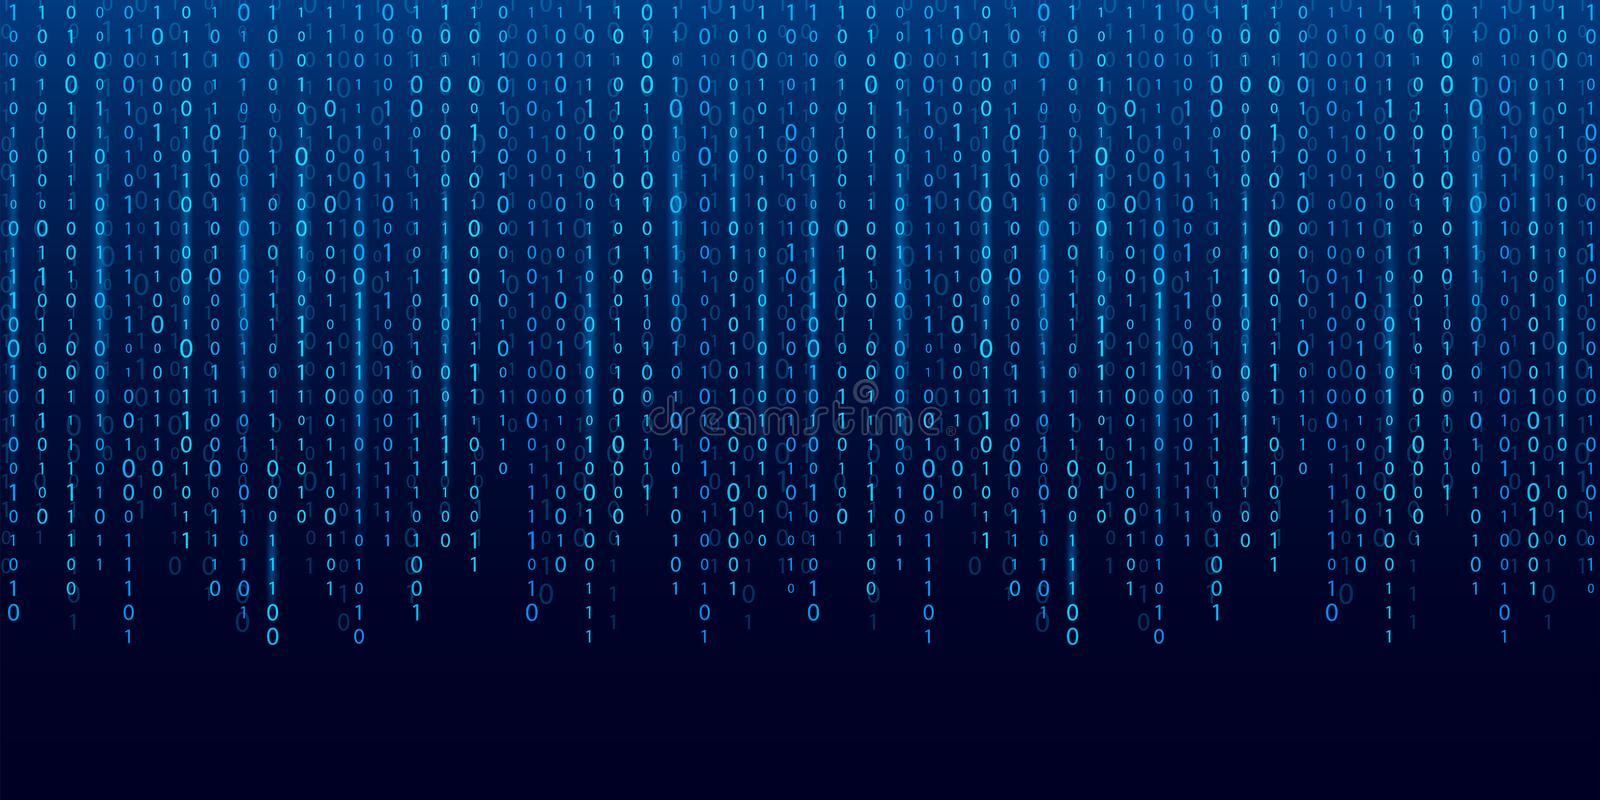 Creative illustration of stream of binary code. Computer matrix background art design. Digits on screen. Abstract concept graphic stock photo